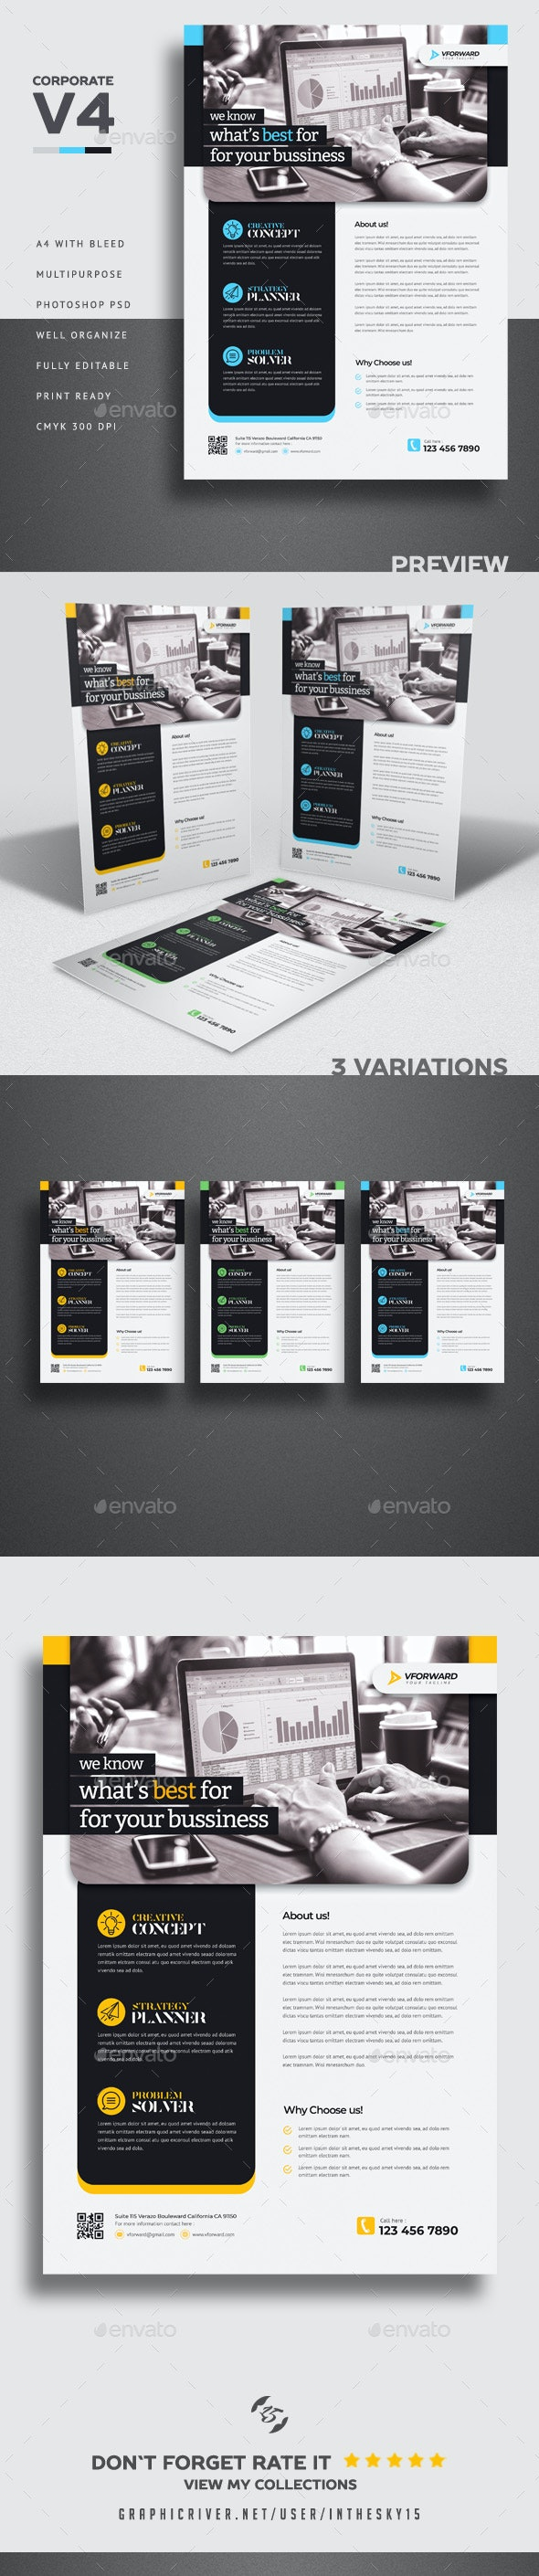 Corporate V4 Flyer - Corporate Flyers